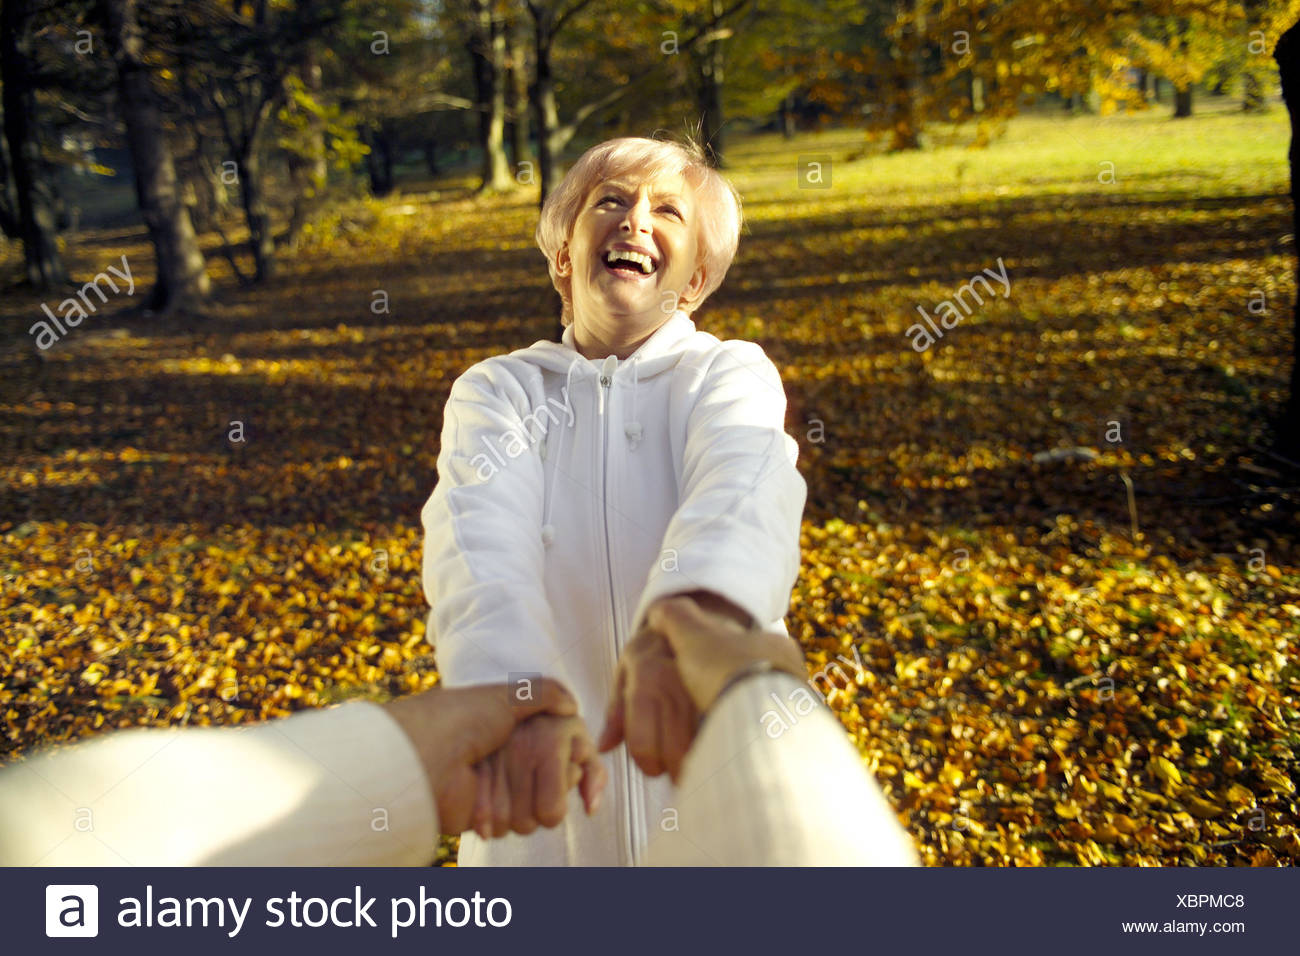 Park, Senior couple, hands hold, rotate, melted, happy, detail, 55 laugh - 65 years, couple, senior citizens, Best Agers, Jung-remaining, man, detail, hands, partner, happy, dance, togetherness, love, fun, amusement, cheerfulness, revolve, joy, joy life, - Stock Image